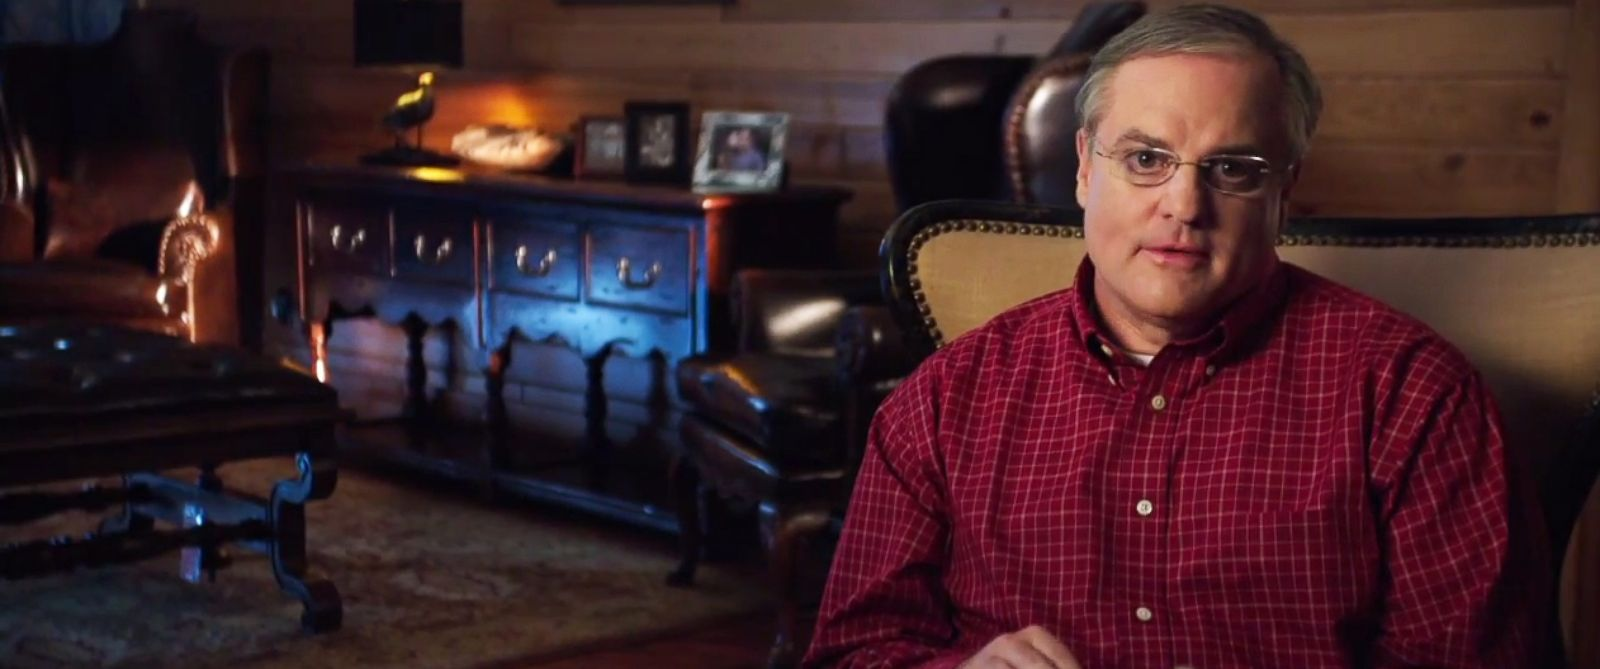 PHOTO: Senator Mark Pryor is seen in this video grab made from a campaign ad posted to YouTube on July 7, 2014.